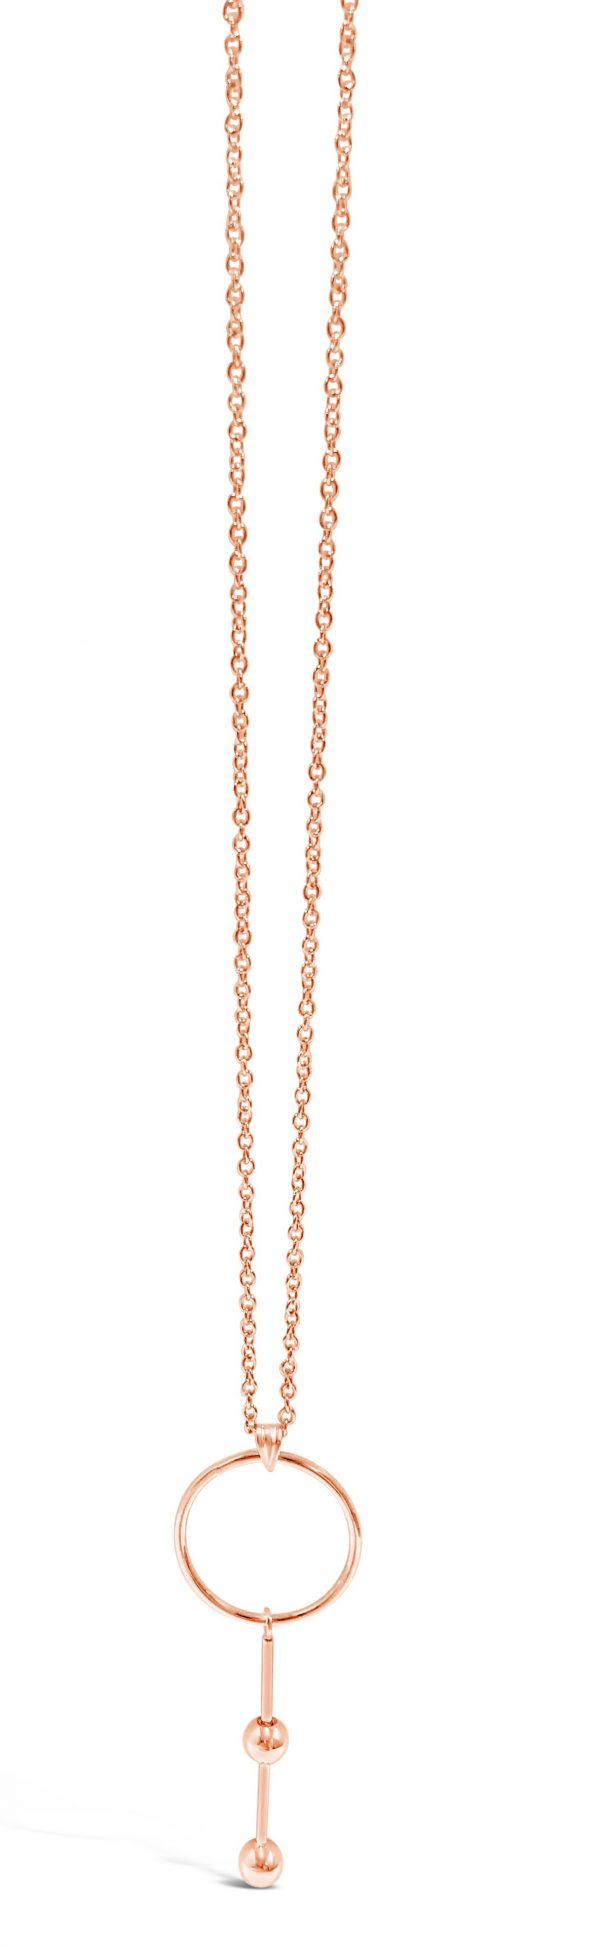 ABSOLUTE N1095RS NECKLACE